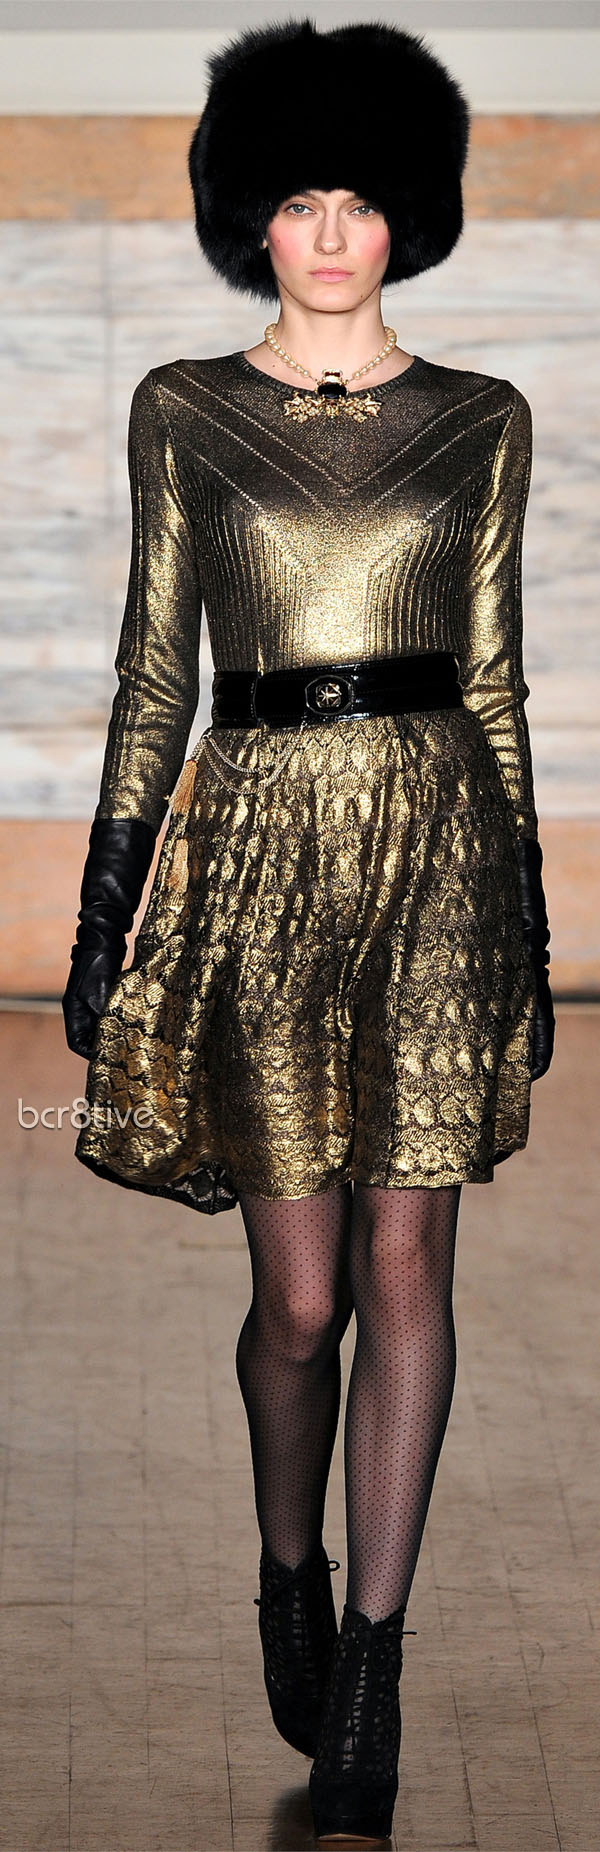 Temperley London Fall Winter 2012-13 Collection _011